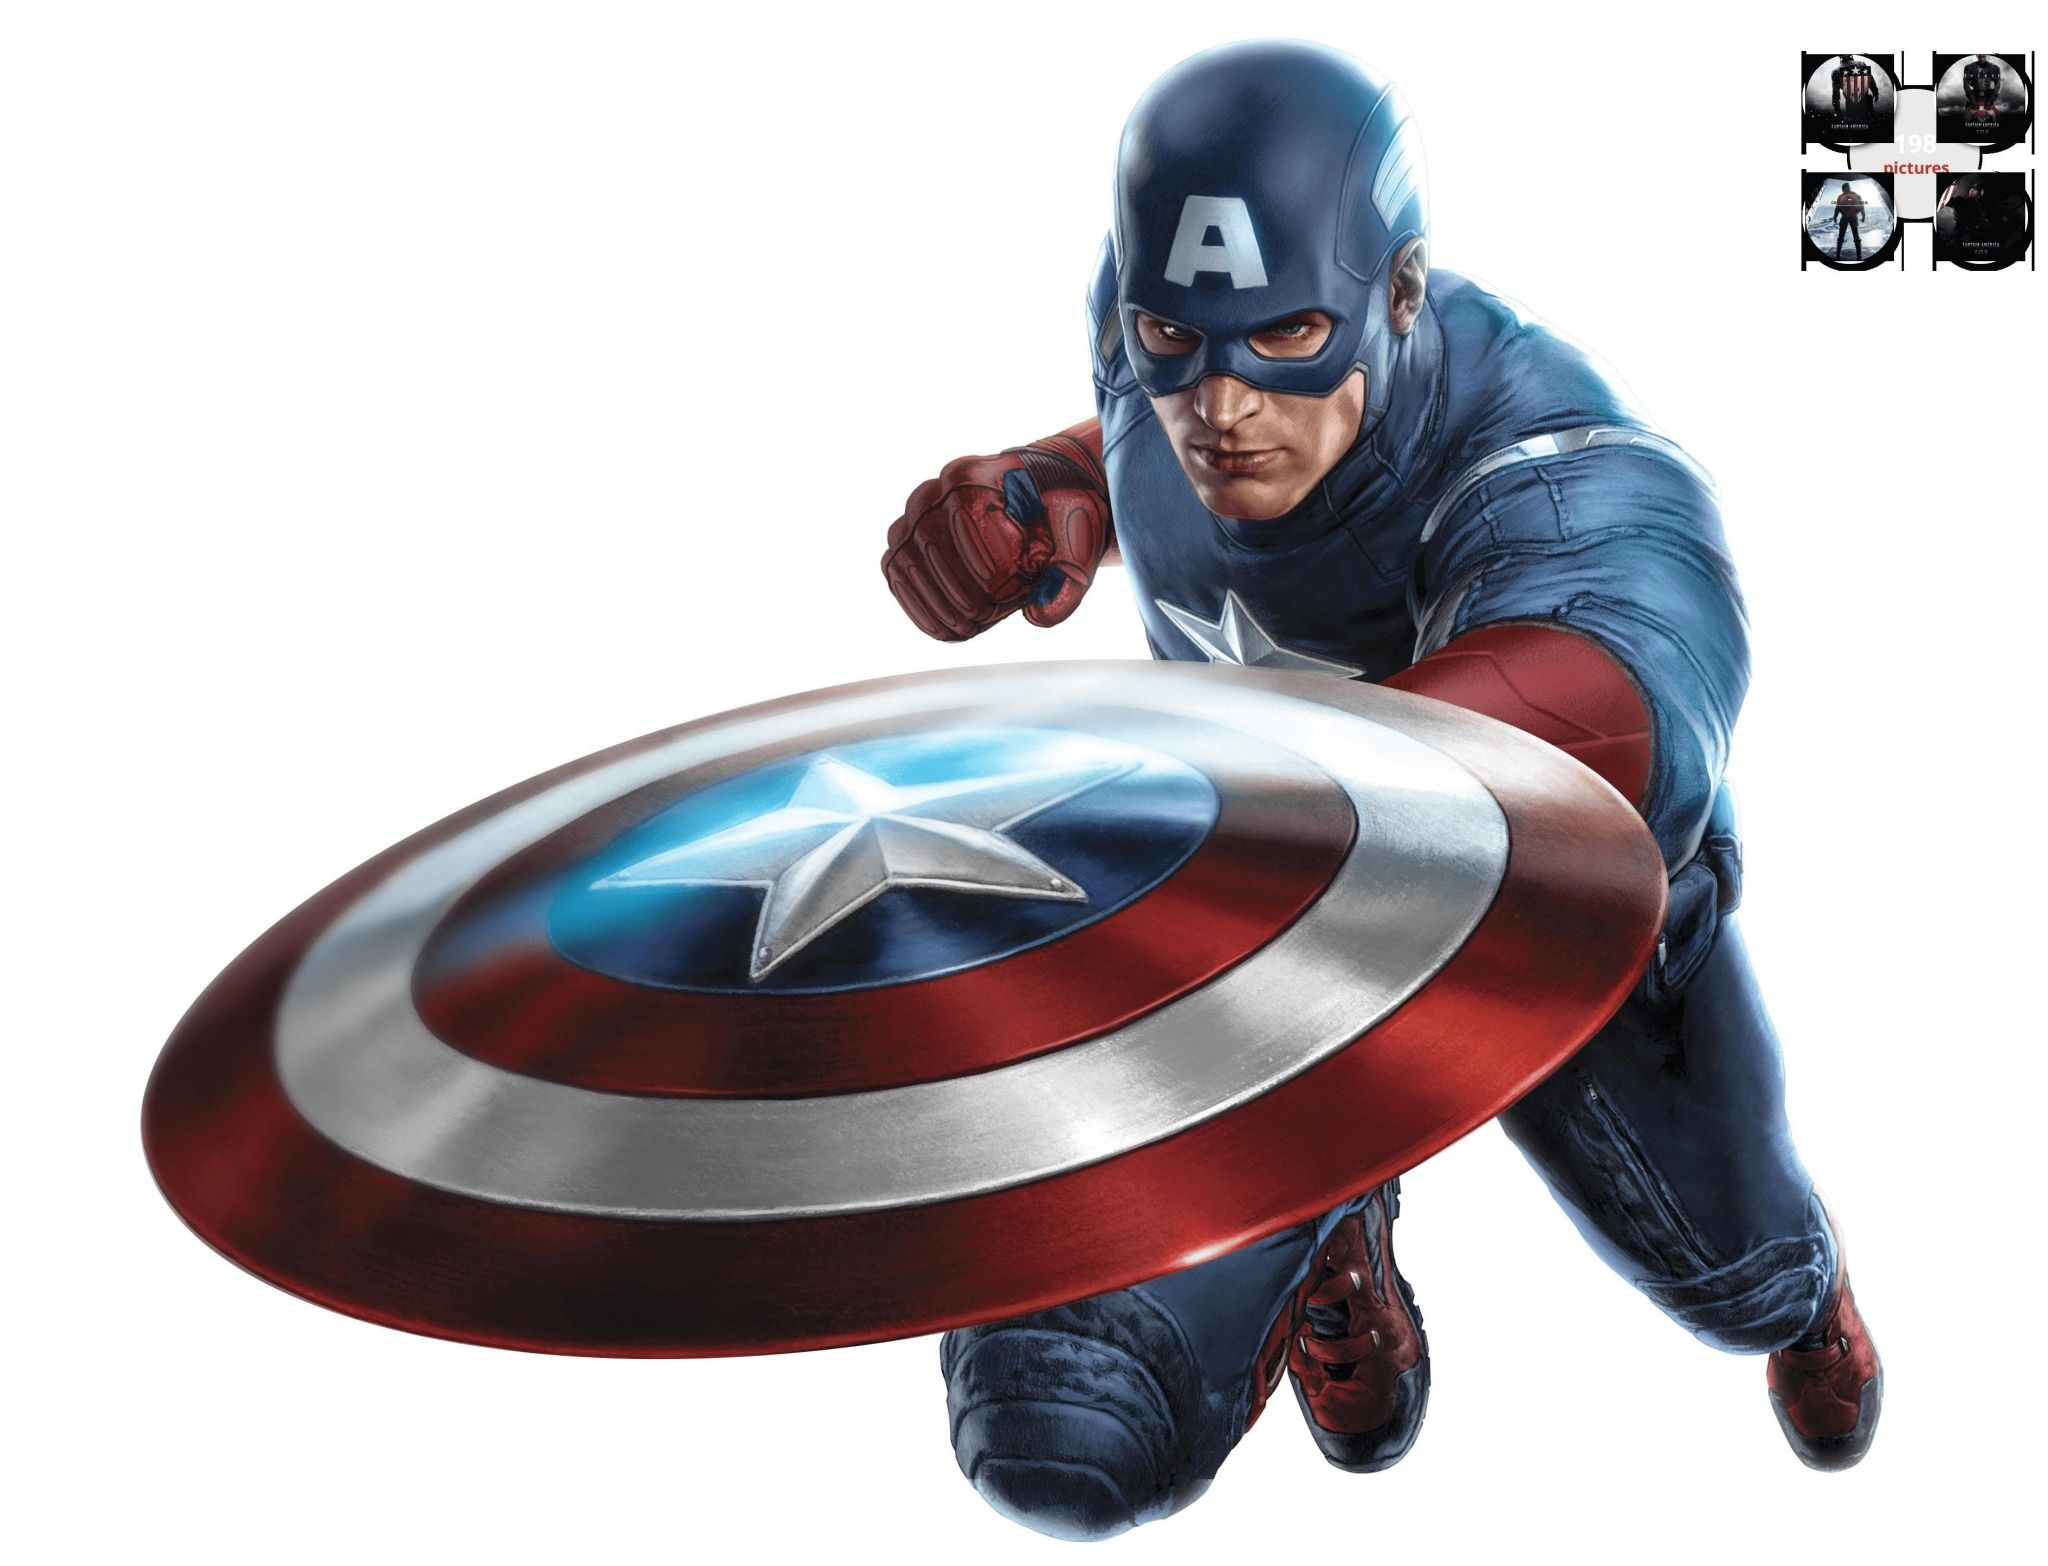 Captain America Windows Wallpaper Inspiration For A New